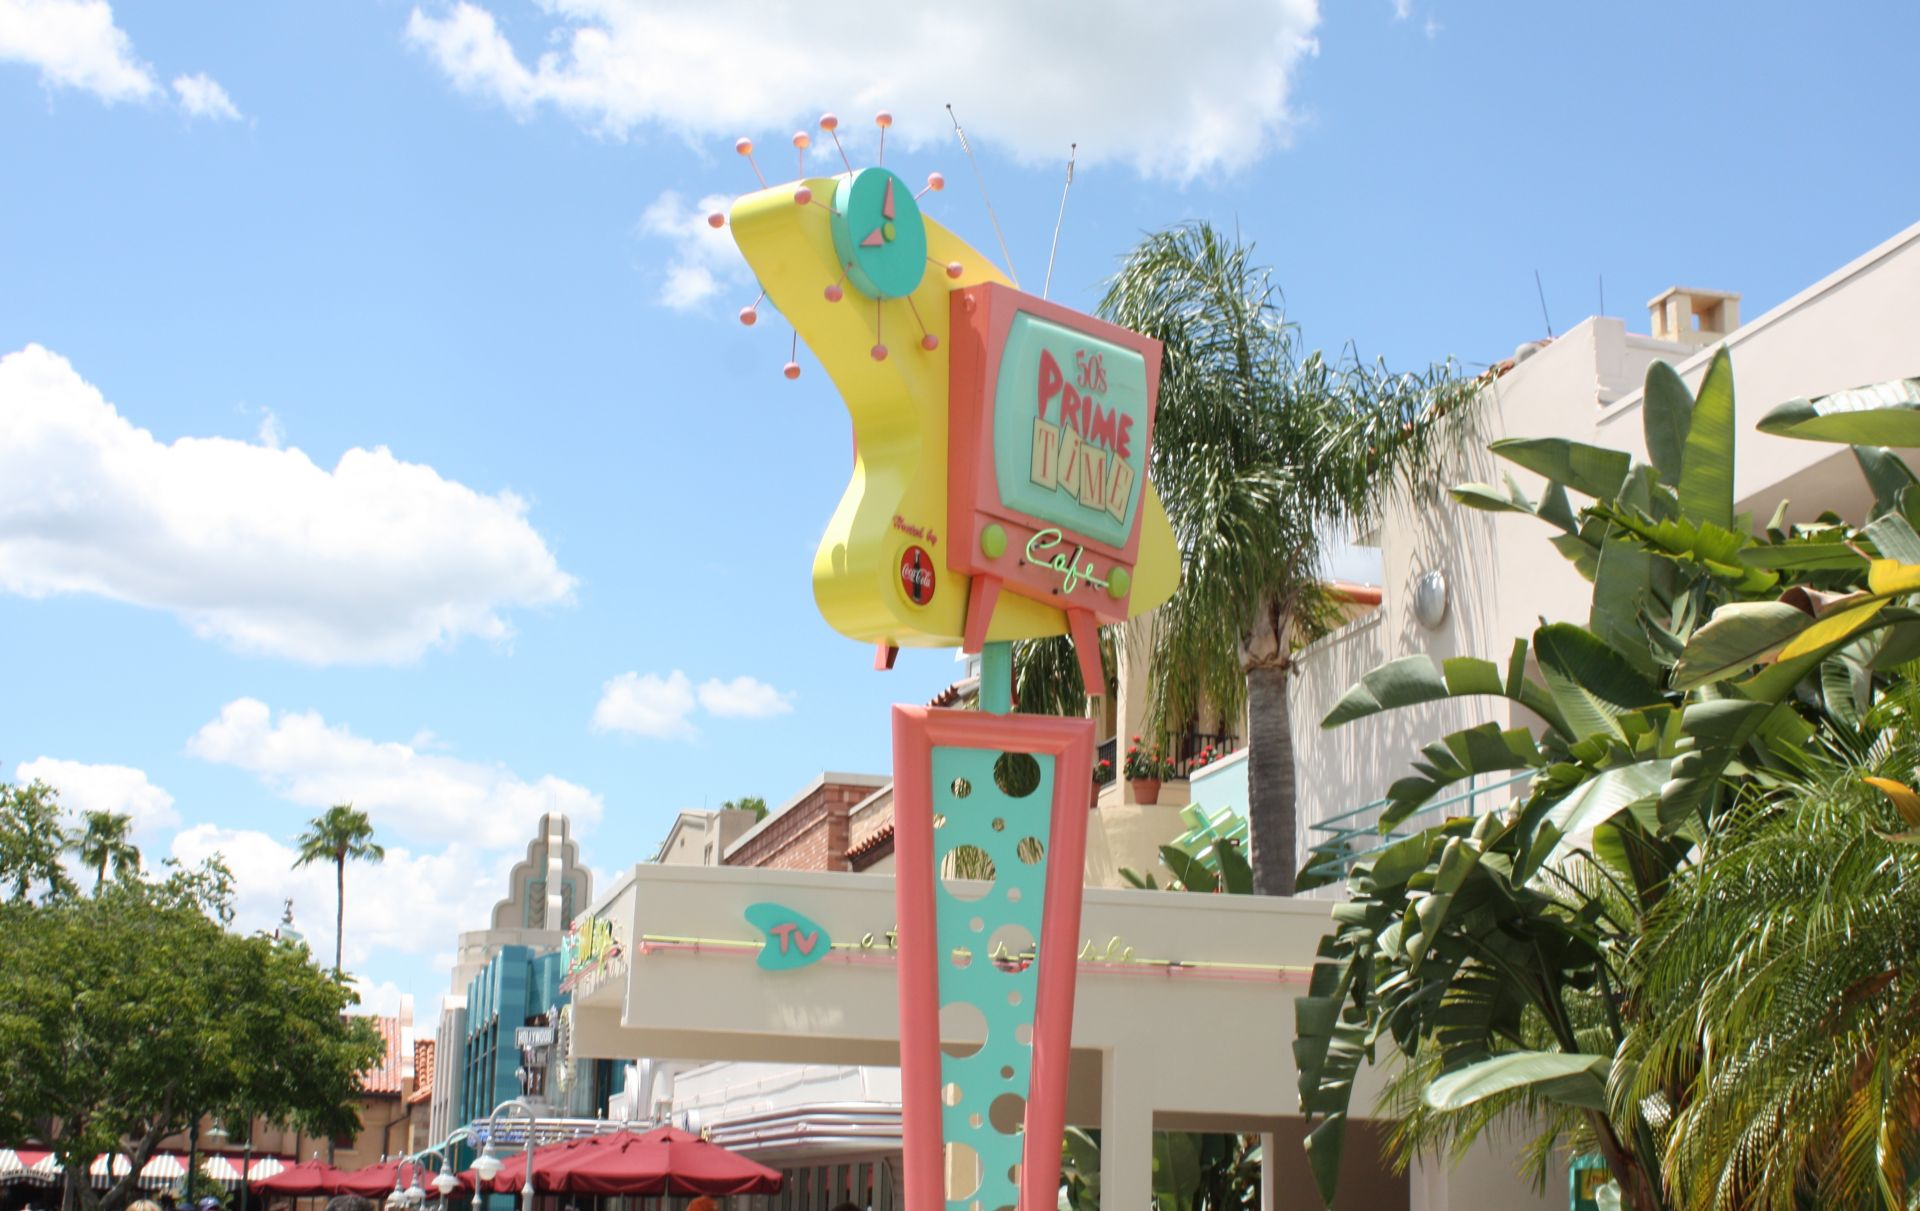 50 39 s prime time cafe starts with a wish travel for Funnest all inclusive resorts